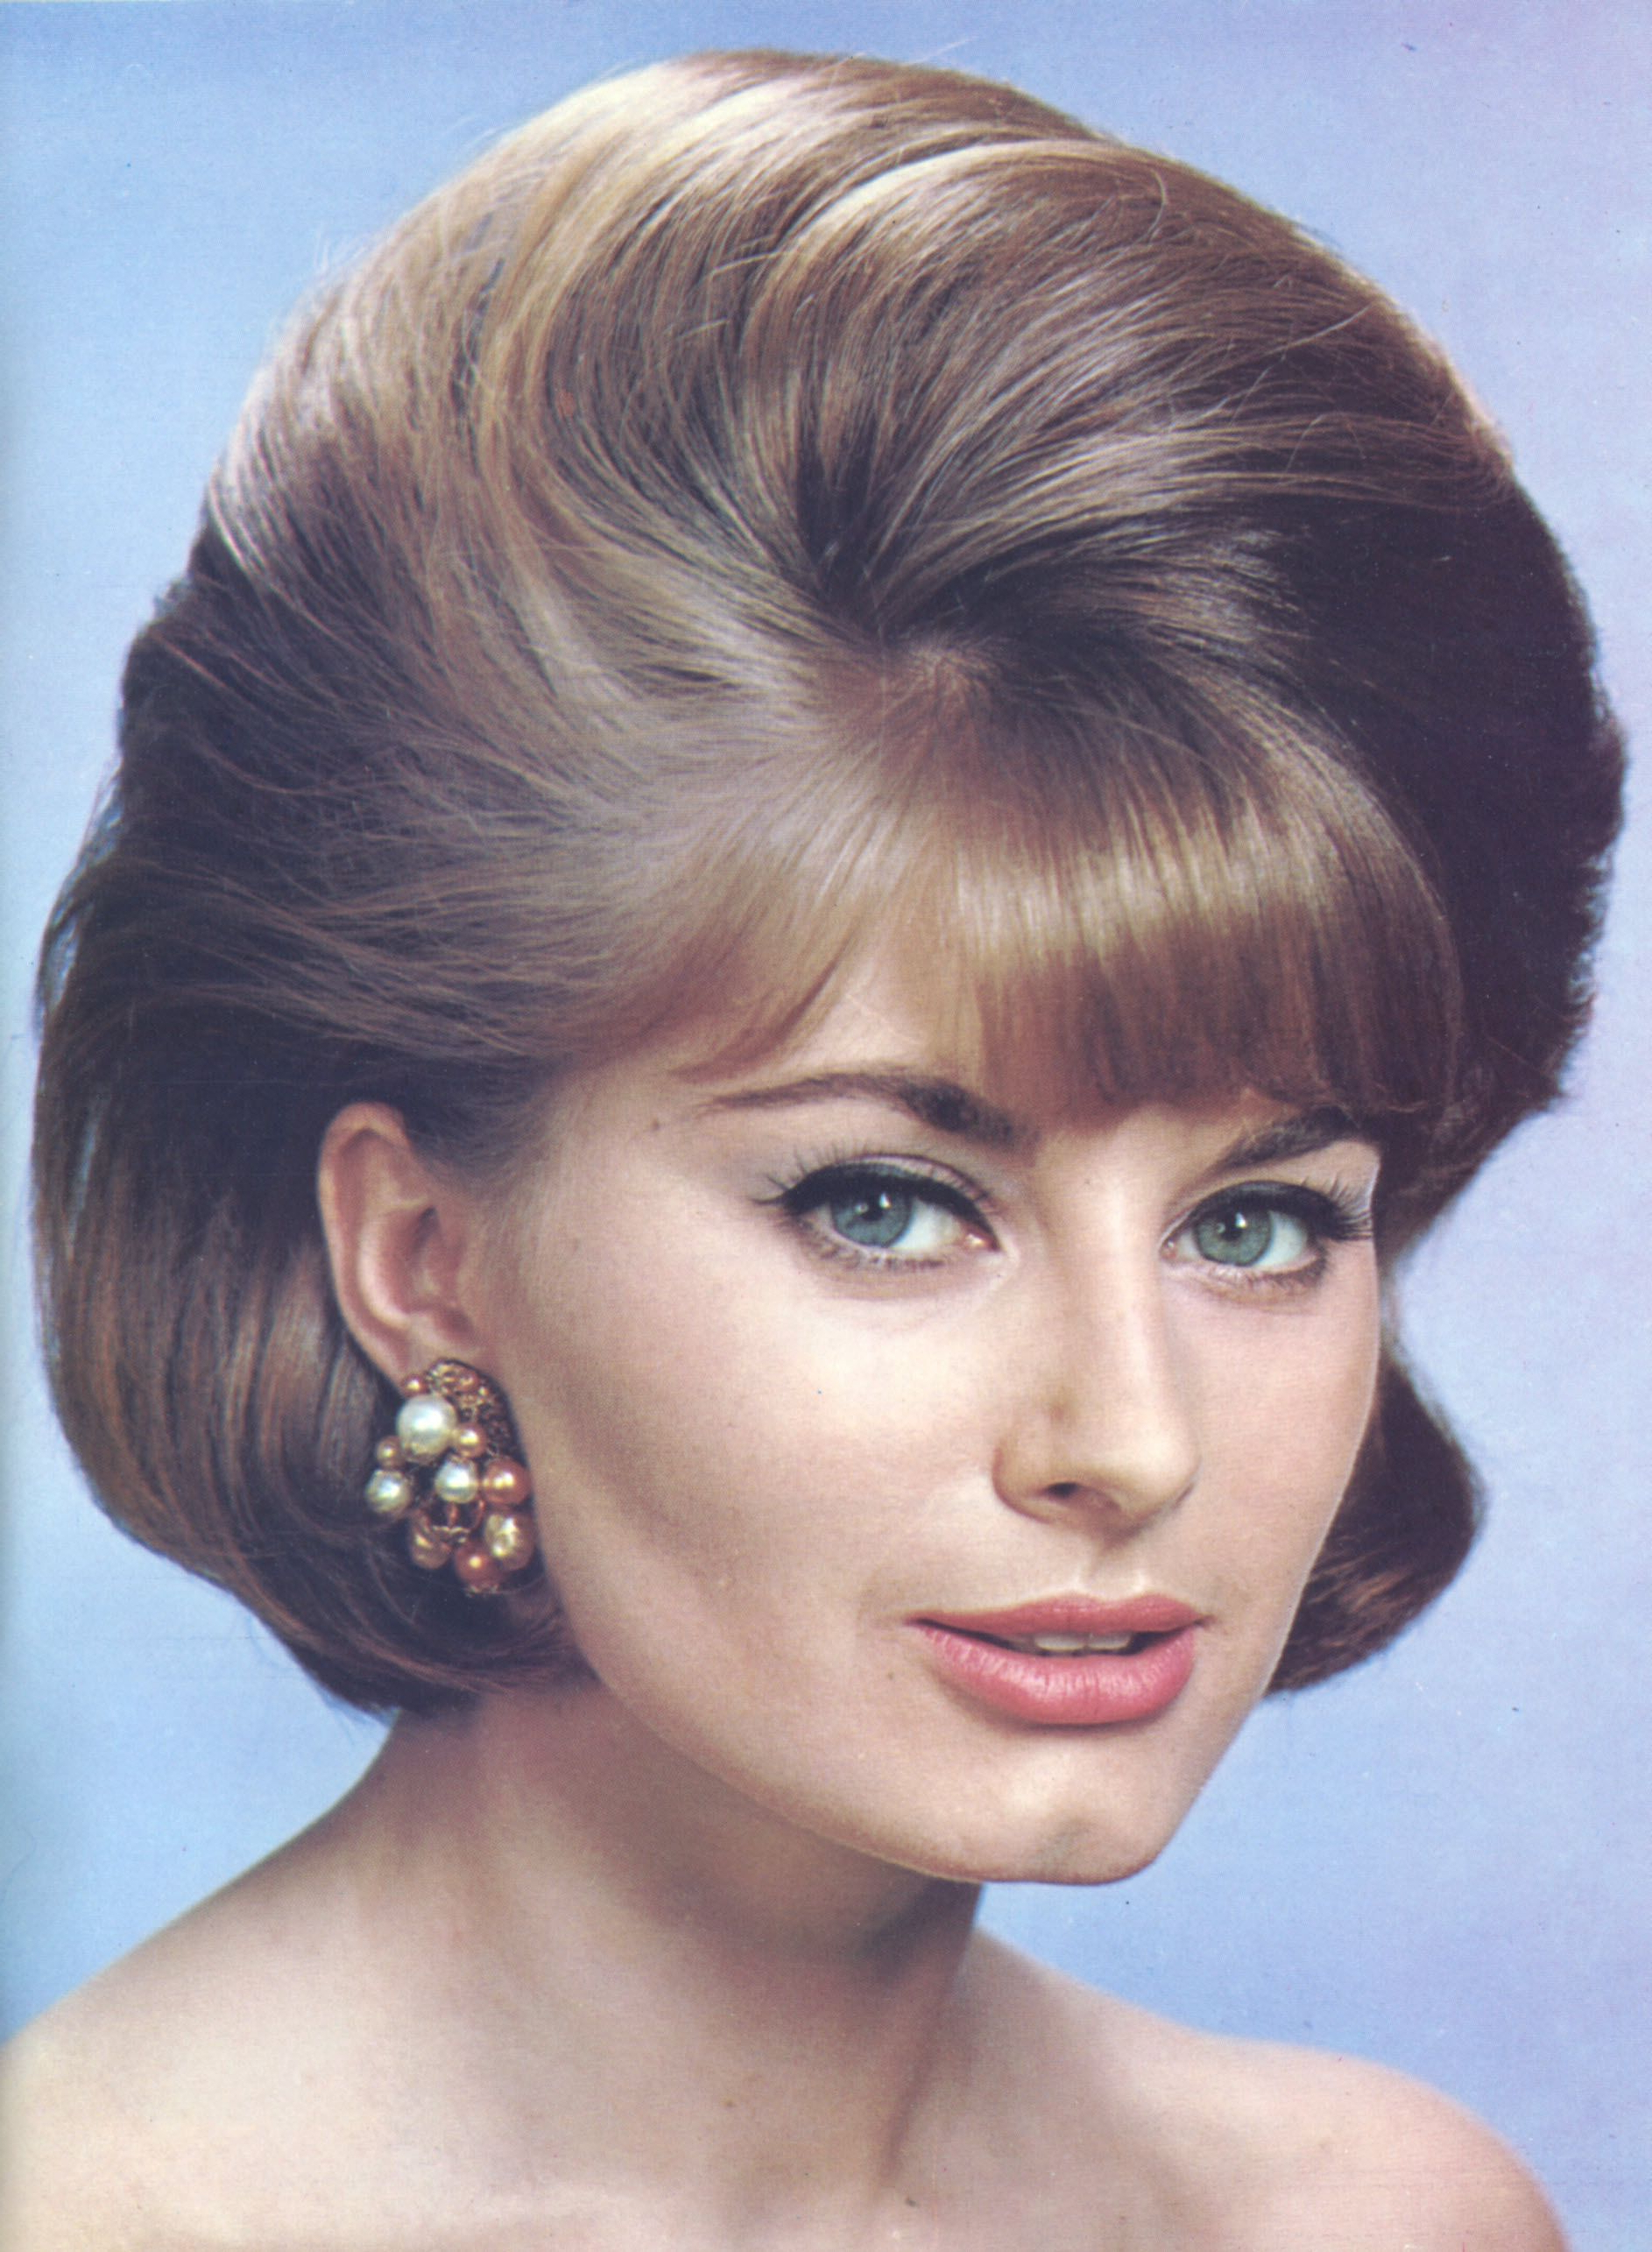 Current Curly Ash Blonde Updo Hairstyles With Bouffant And Bangs Within 50S Hair Goals #bouffanthairmodern (View 17 of 20)